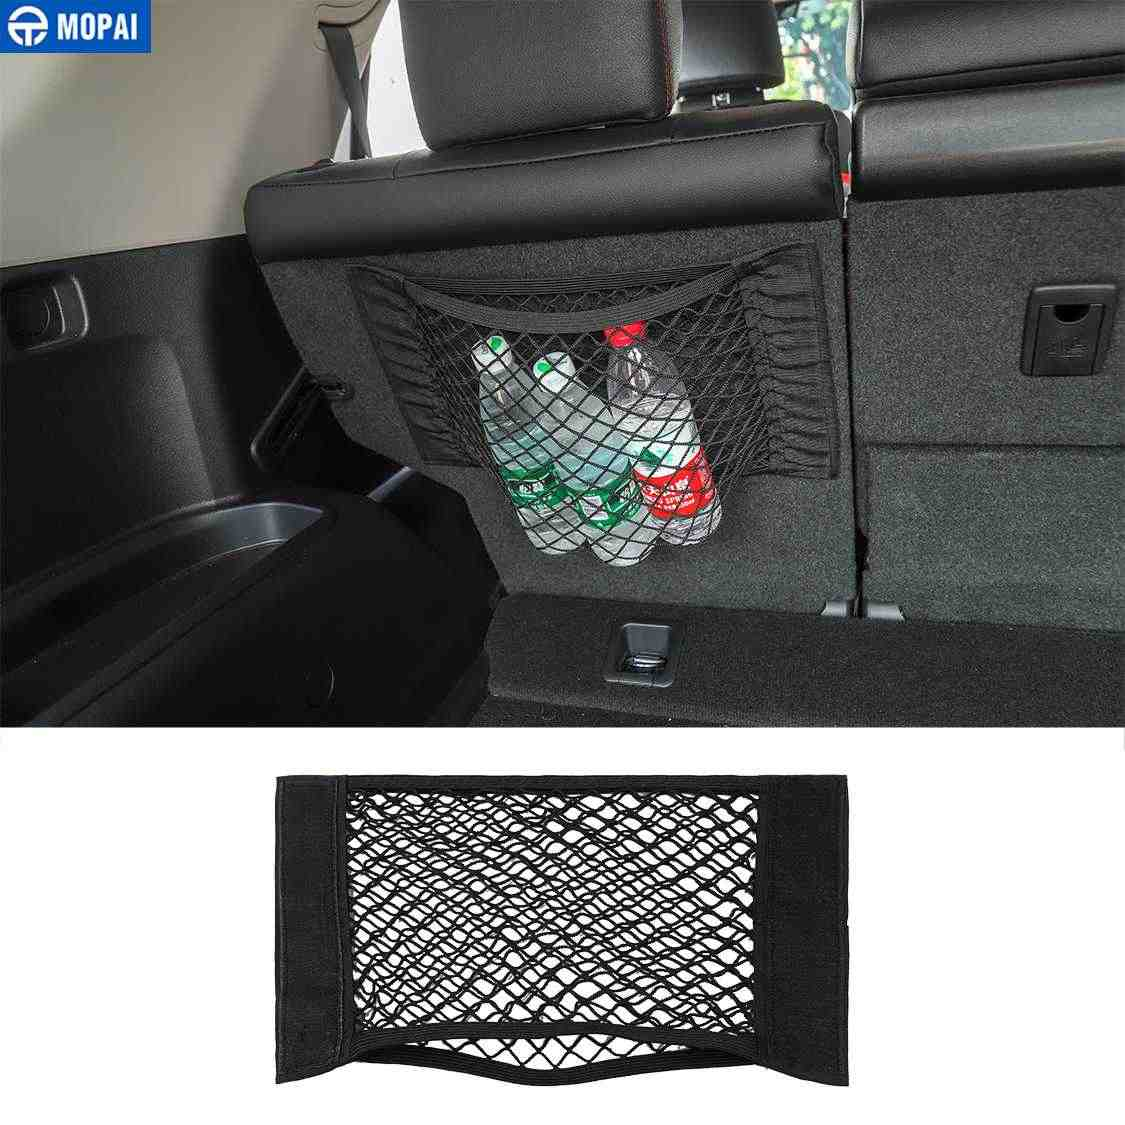 Mopai Car Mesh Net Bag For All Car Organizer Universal Storage Net Holder Pocket For Jeep Toyota 4runner Car Styling Accessories Stowing Tidying Aliexpress